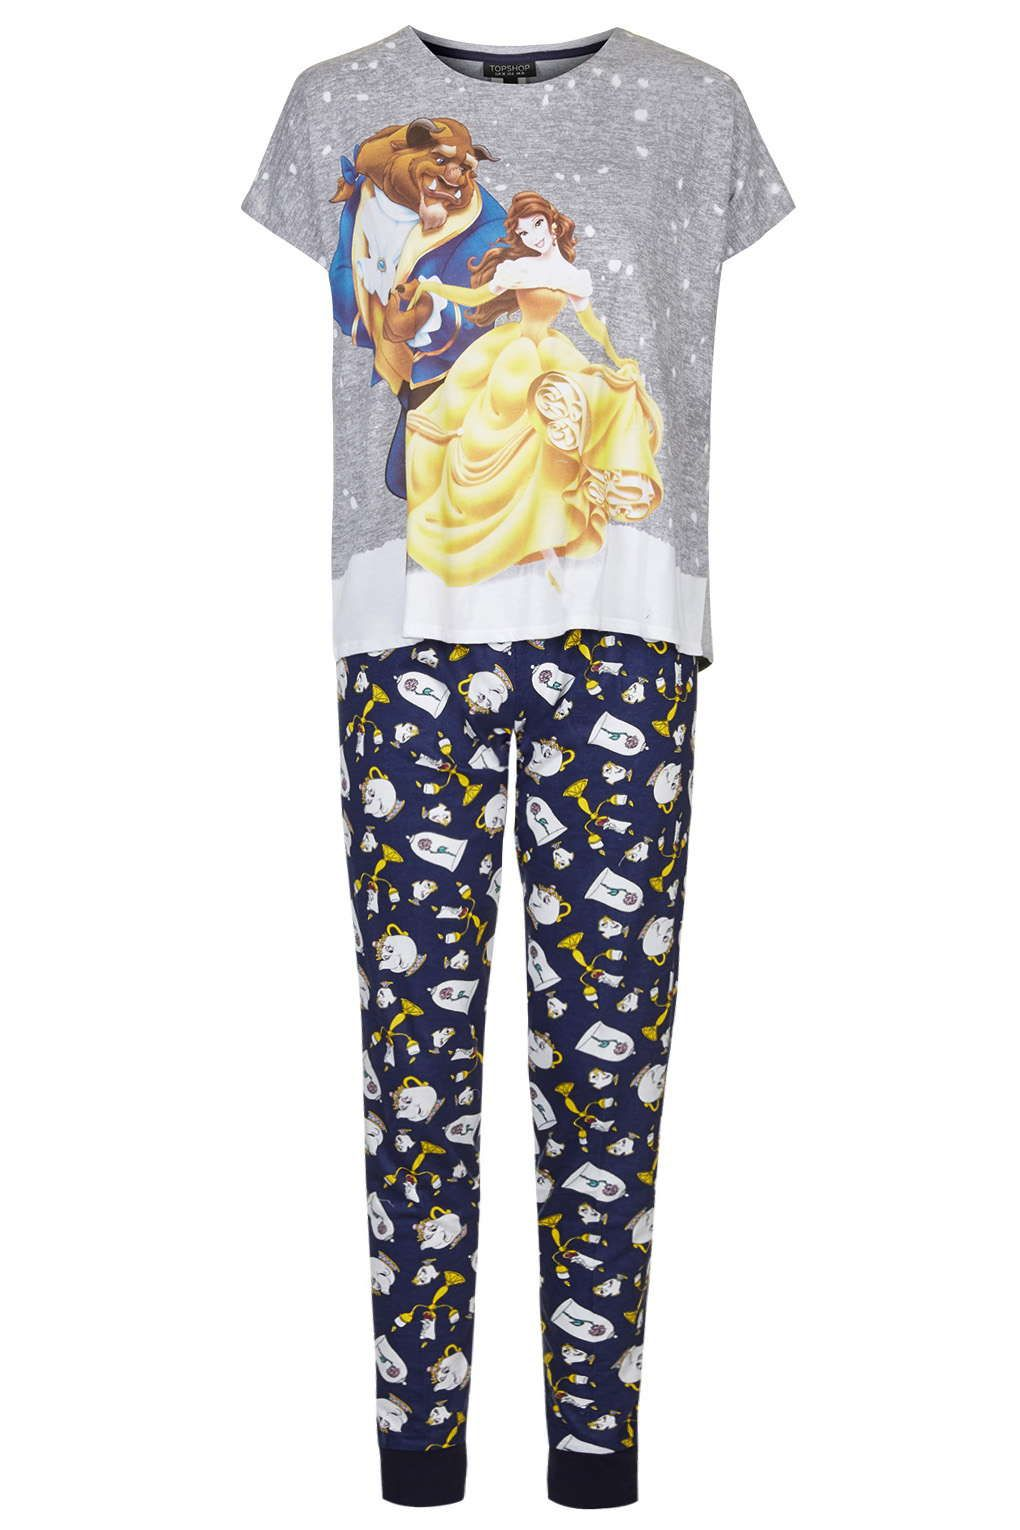 Beauty And The Beast Pyjama Set Nightwear Clothing Topshop Cute Dream Clothes I Want